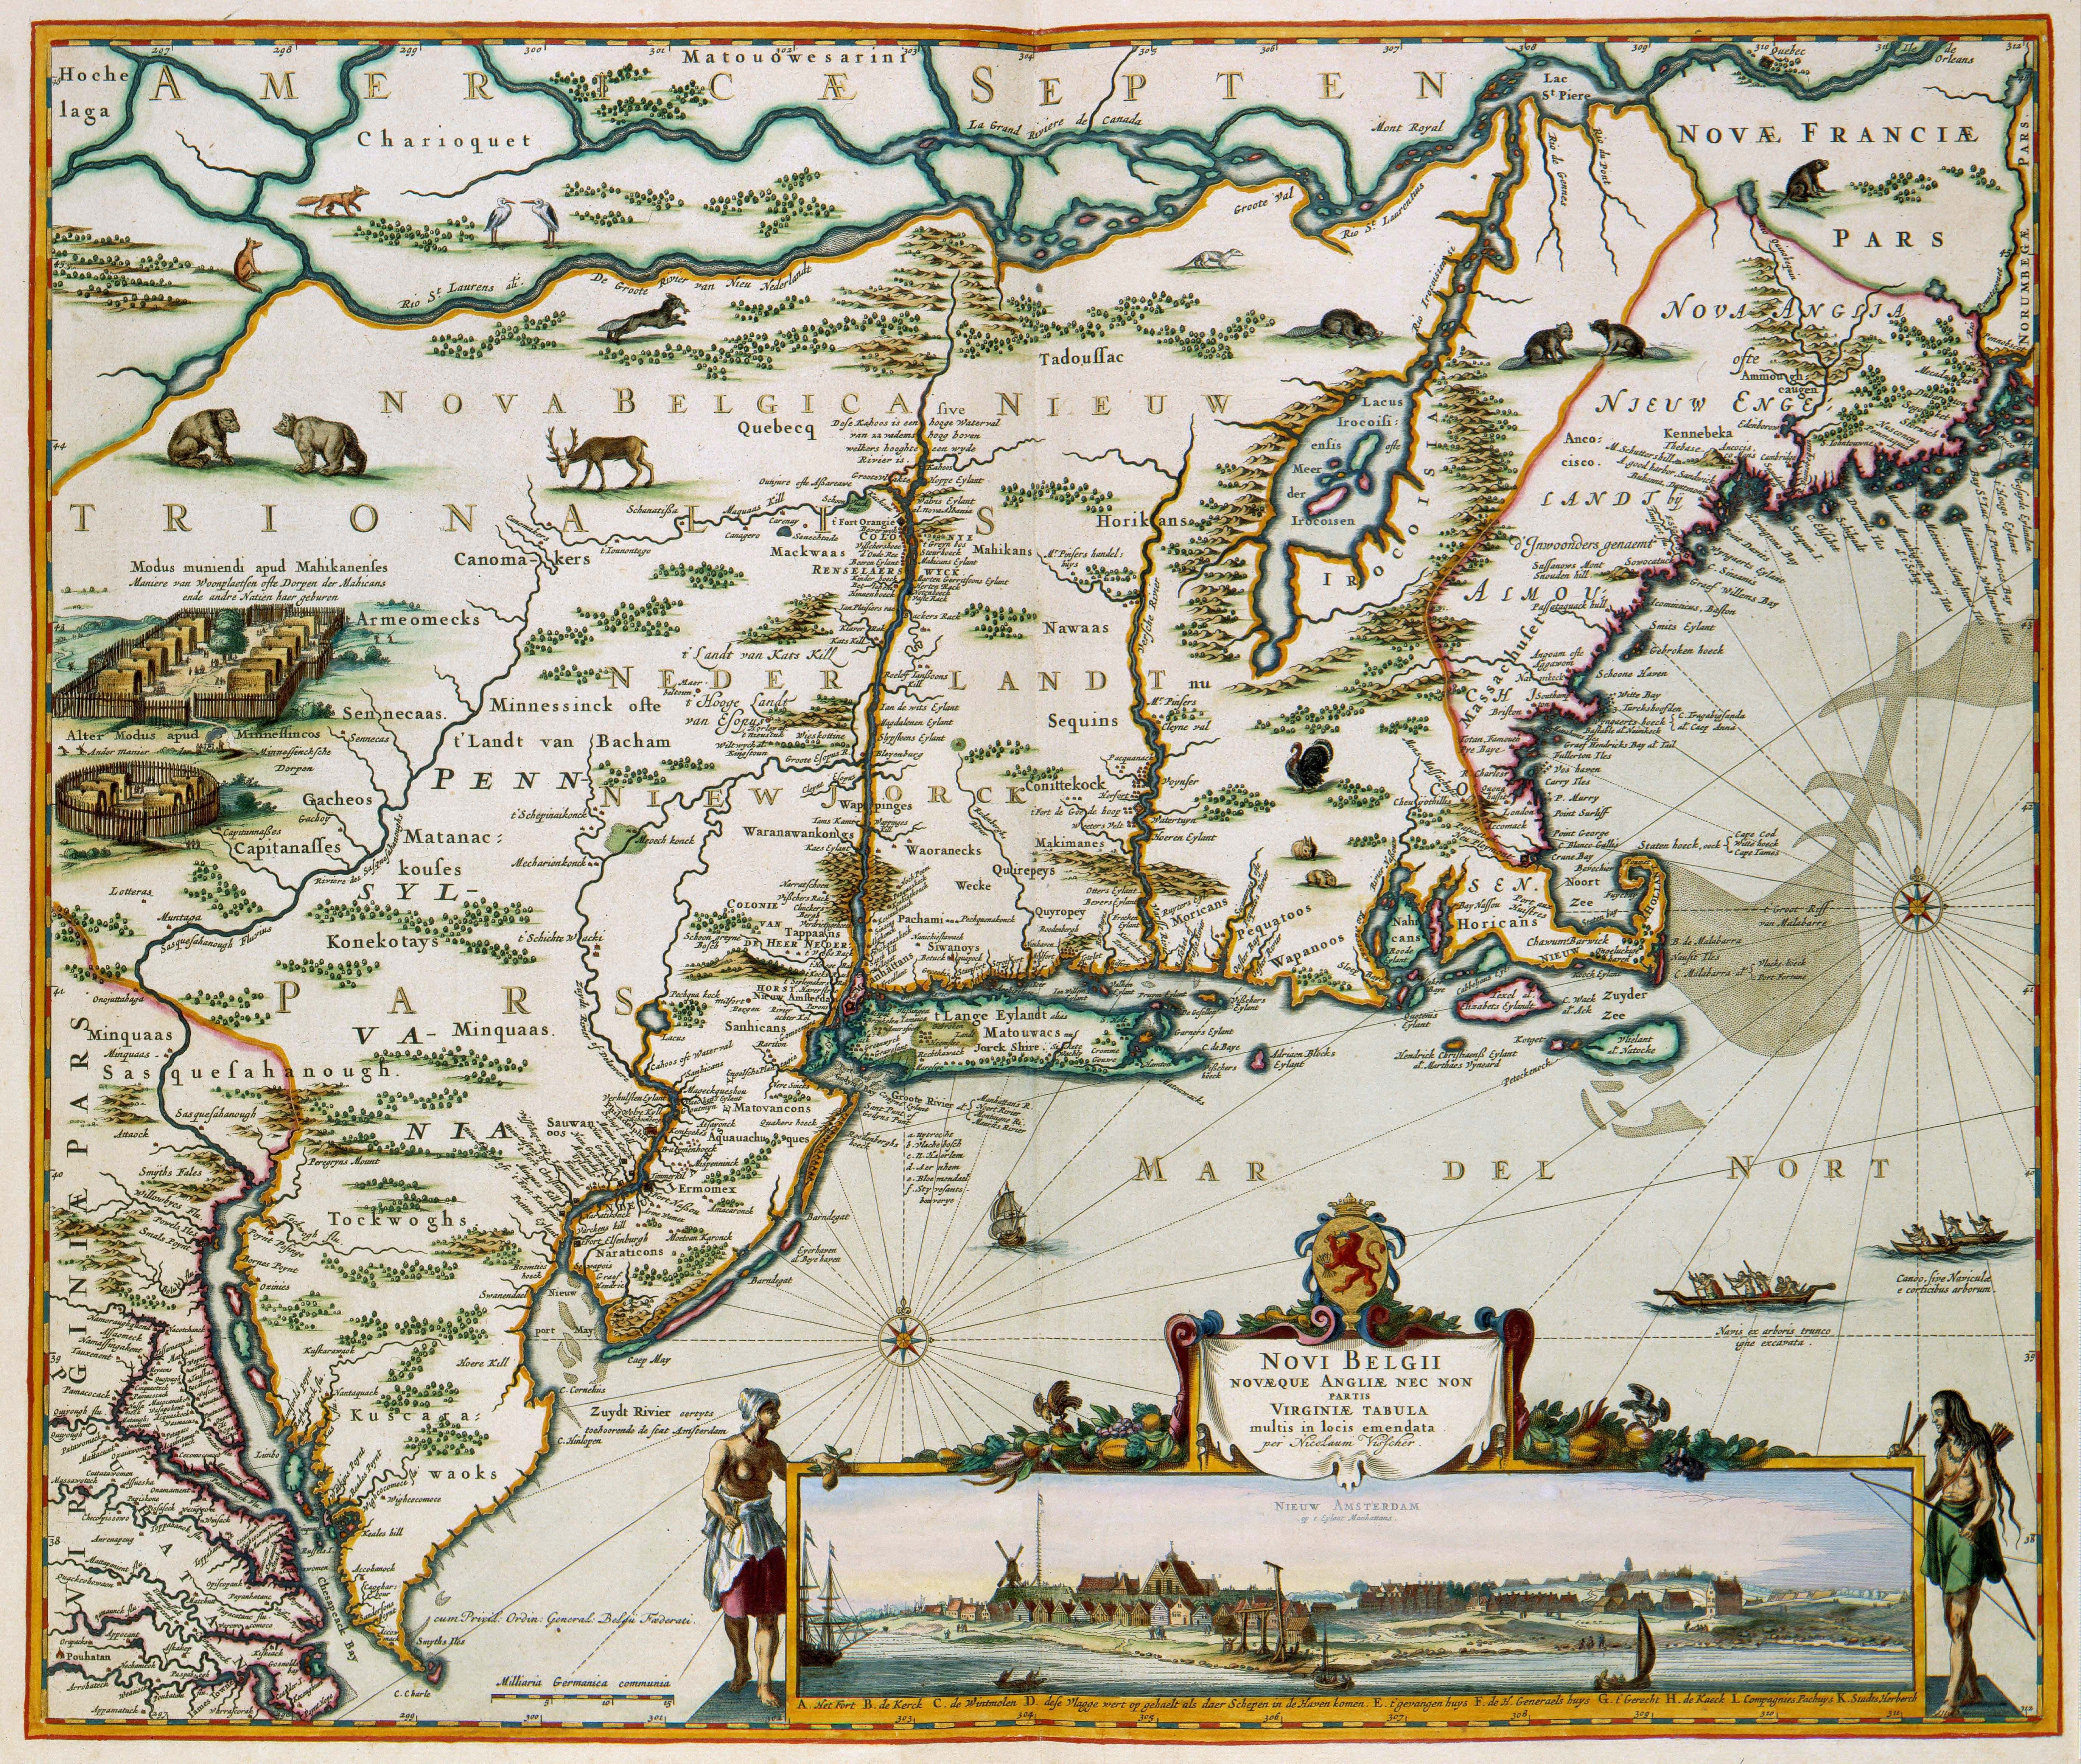 The North American Colony of New Netherland in the 17th Century